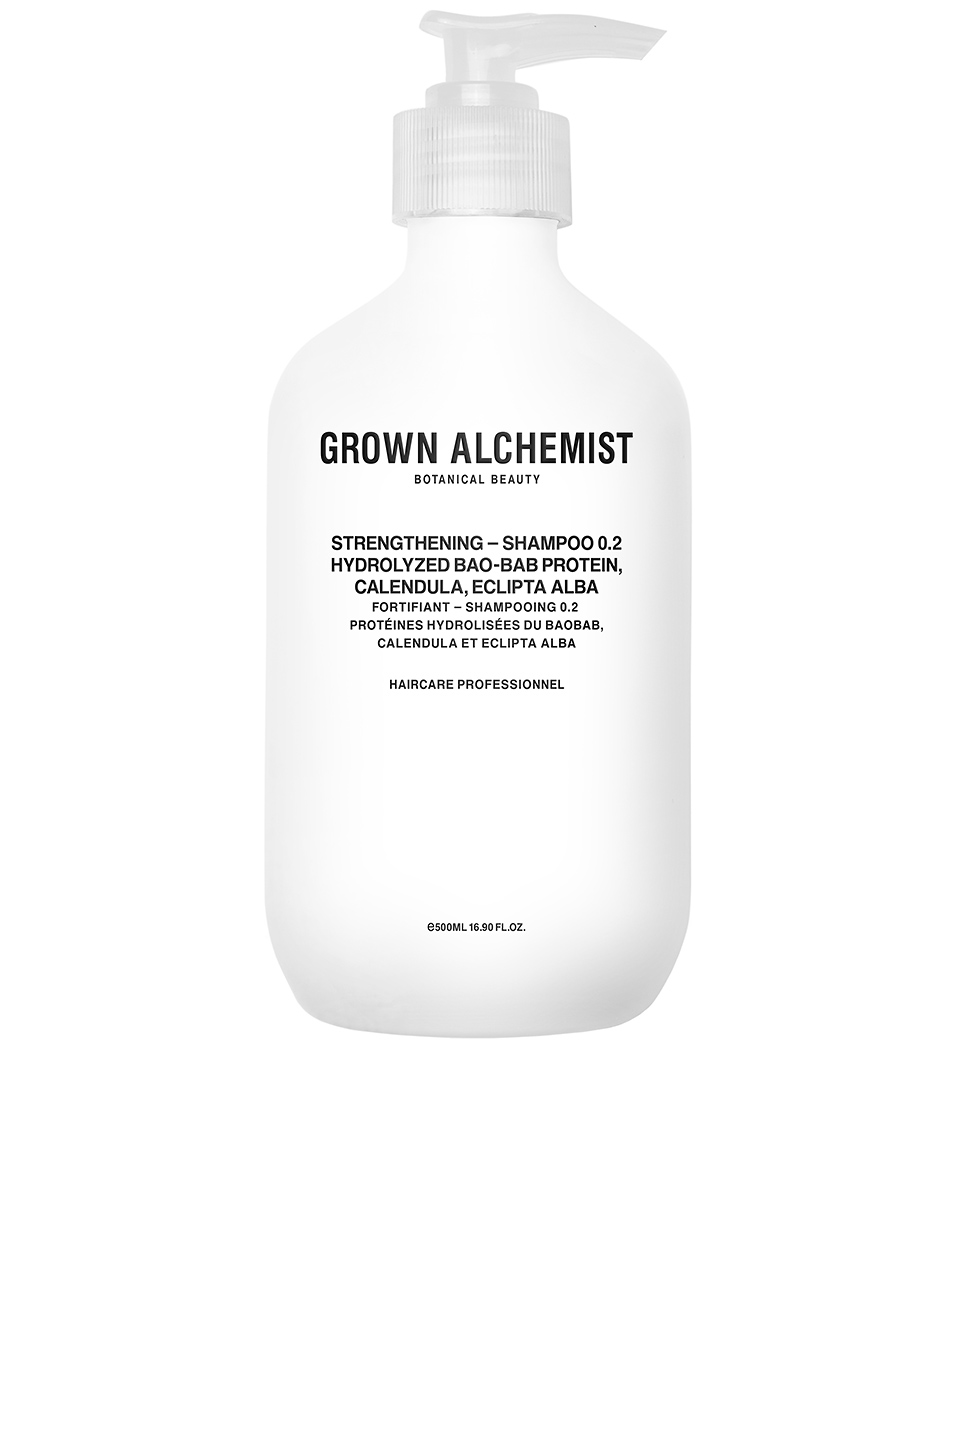 Grown Alchemist Strengthening Shampoo 0.2 in Hydrolyzed Bao-Bab Protein & Calendula & Eclipta Alba